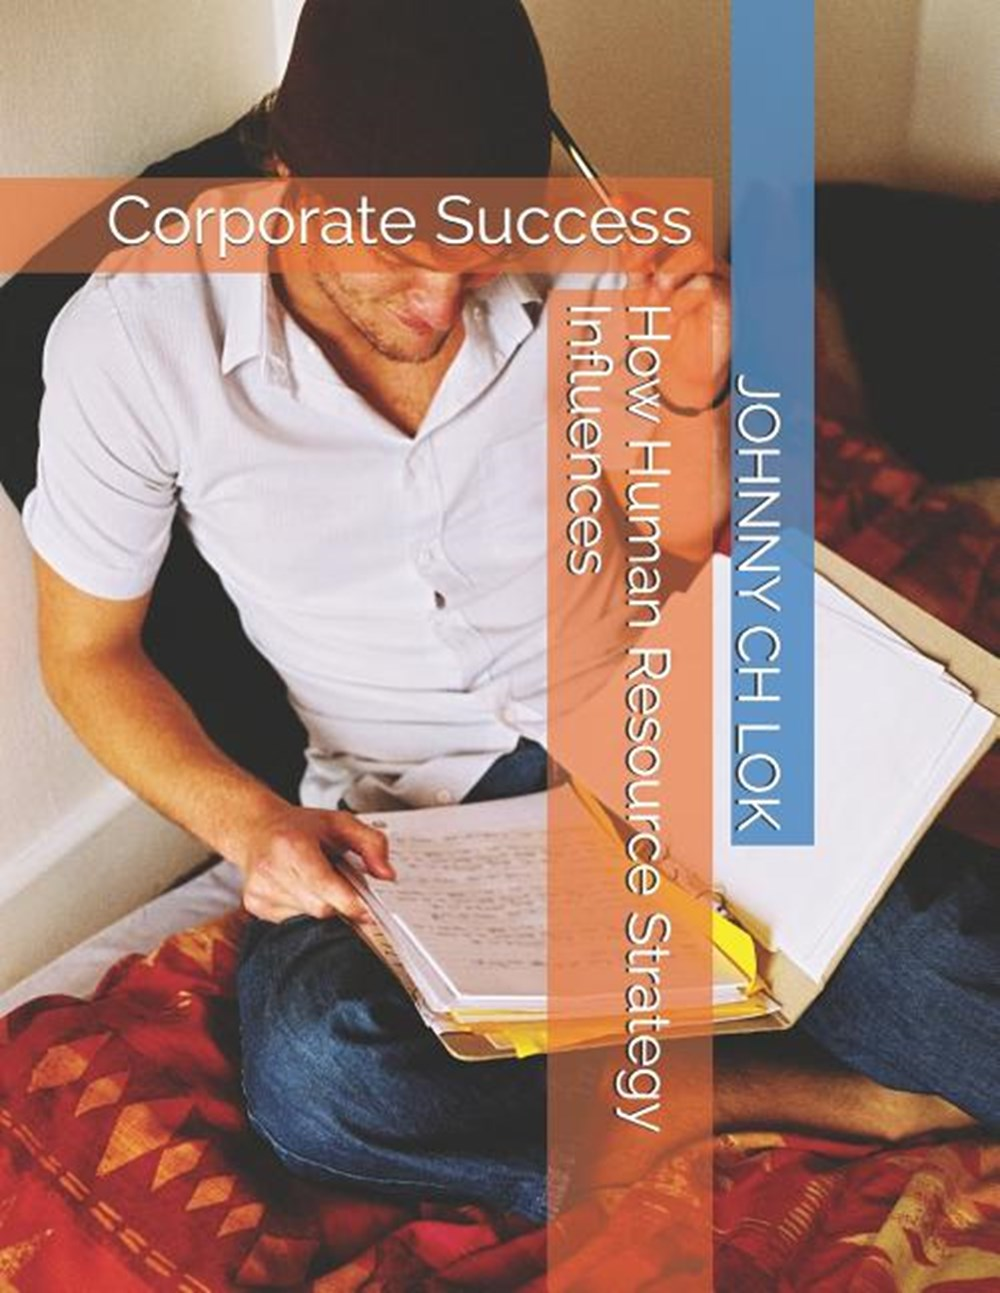 How Human Resource Strategy Influences Corporate Success